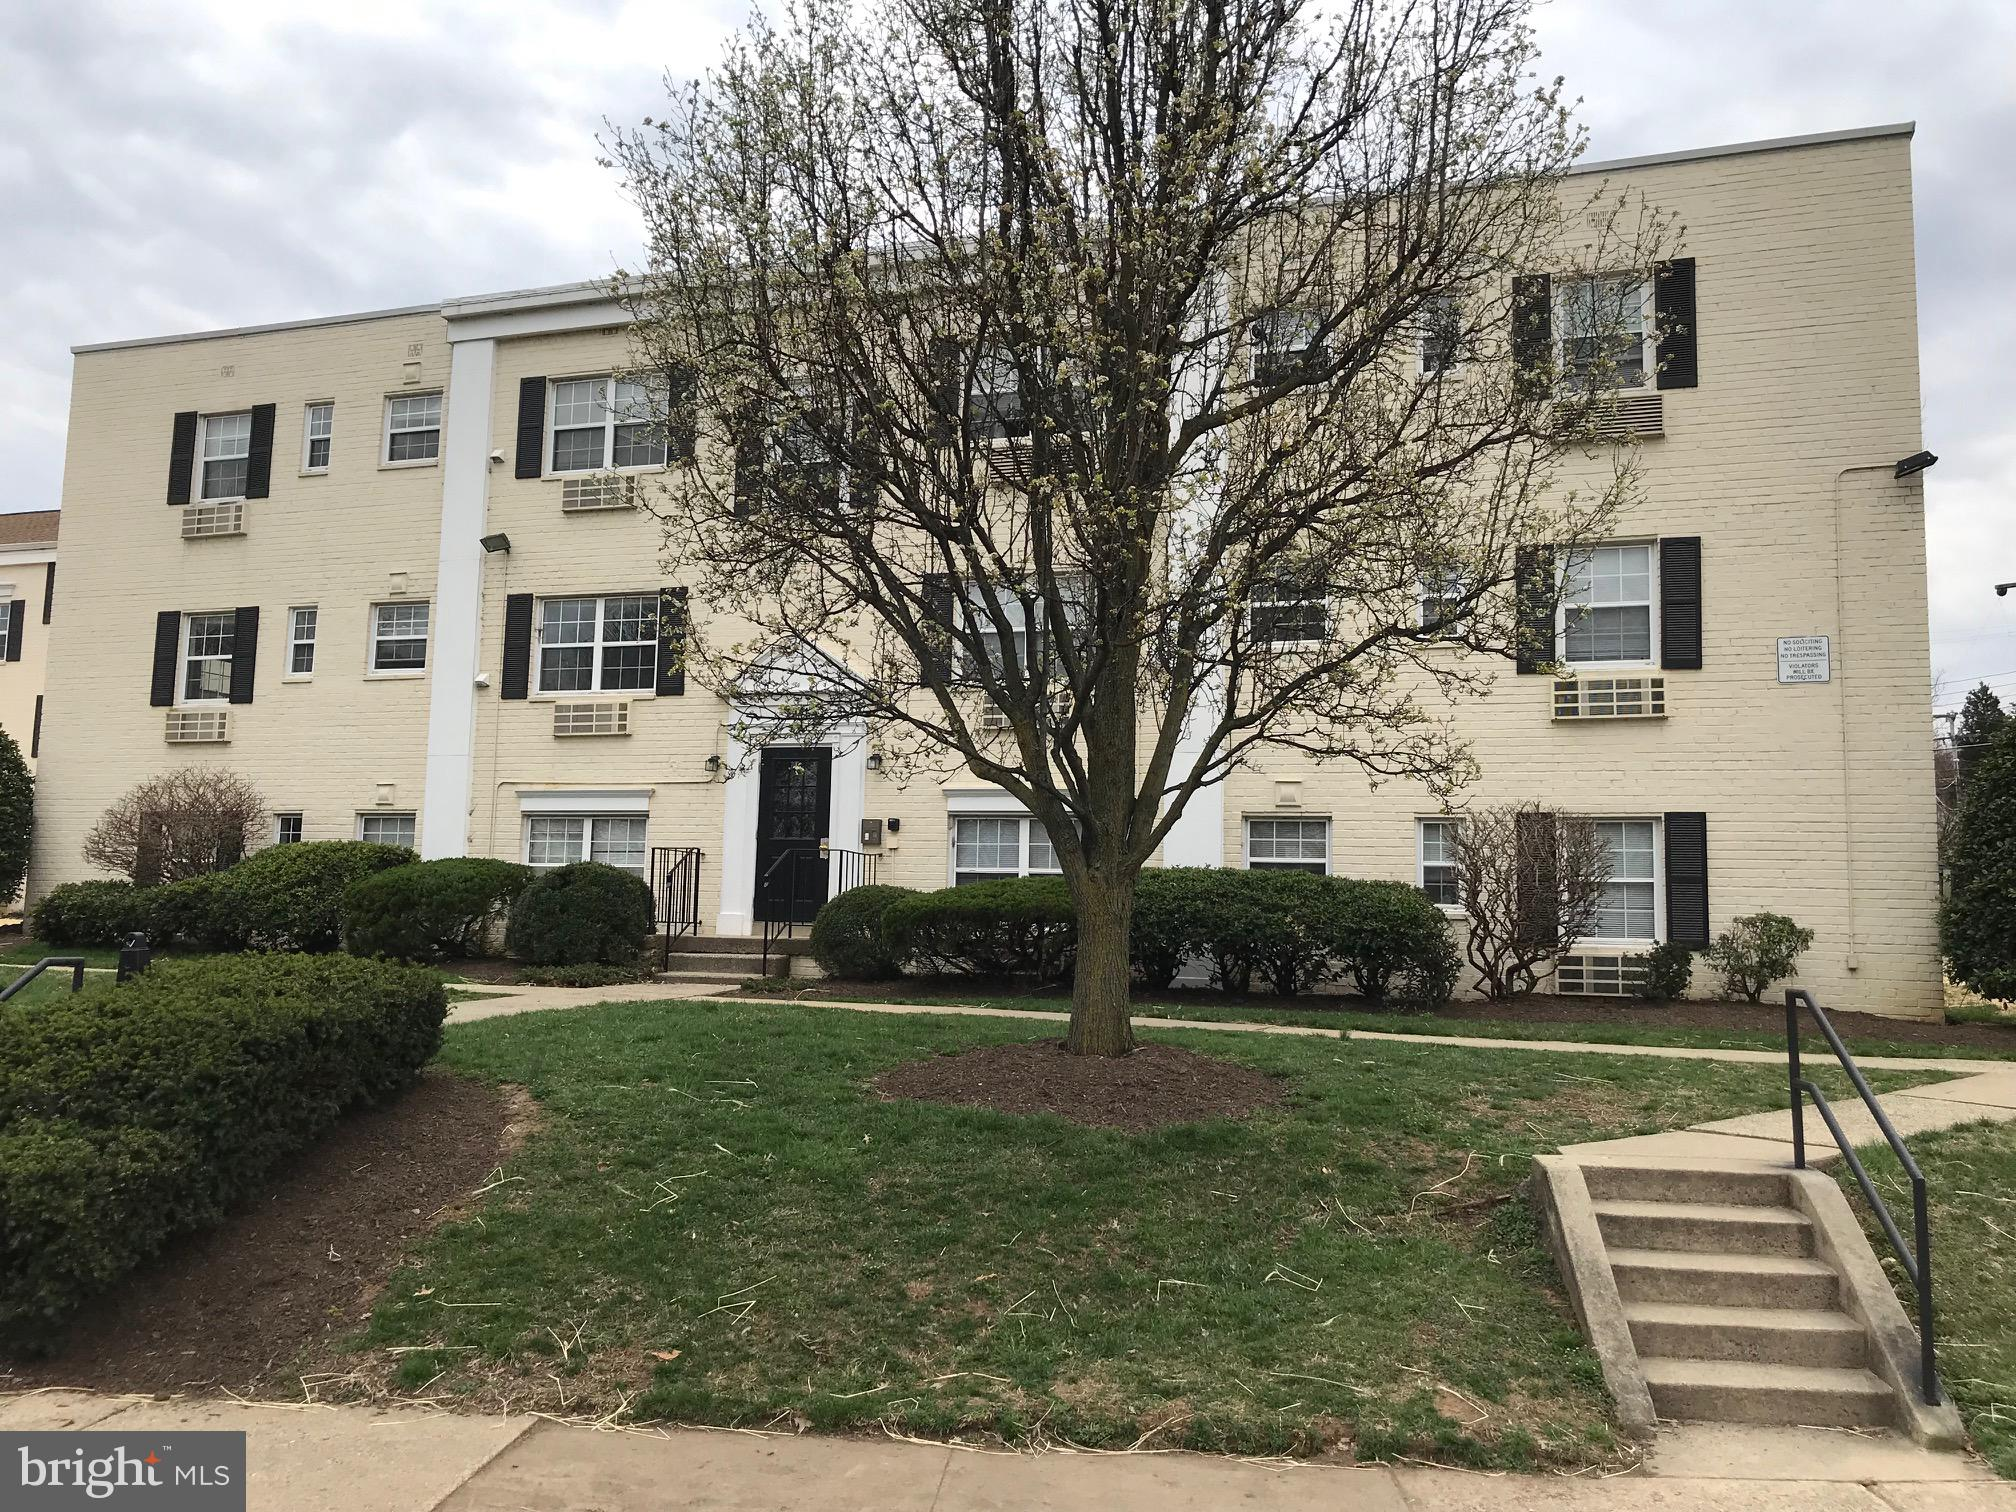 Property is Eligible for Freddie Mac First Look Initiative, for Home Buyers and Non-Profits Until 4/20/19. Seller will not complete any repairs to the subject property, either lender or buyer requested. The property is sold in AS IS condition. Property is a1BR/1BA condo located within walking distance to Huntington Metro Station. Ground floor unit. Property in need of repairs. All Utilities Included in Condo Fees